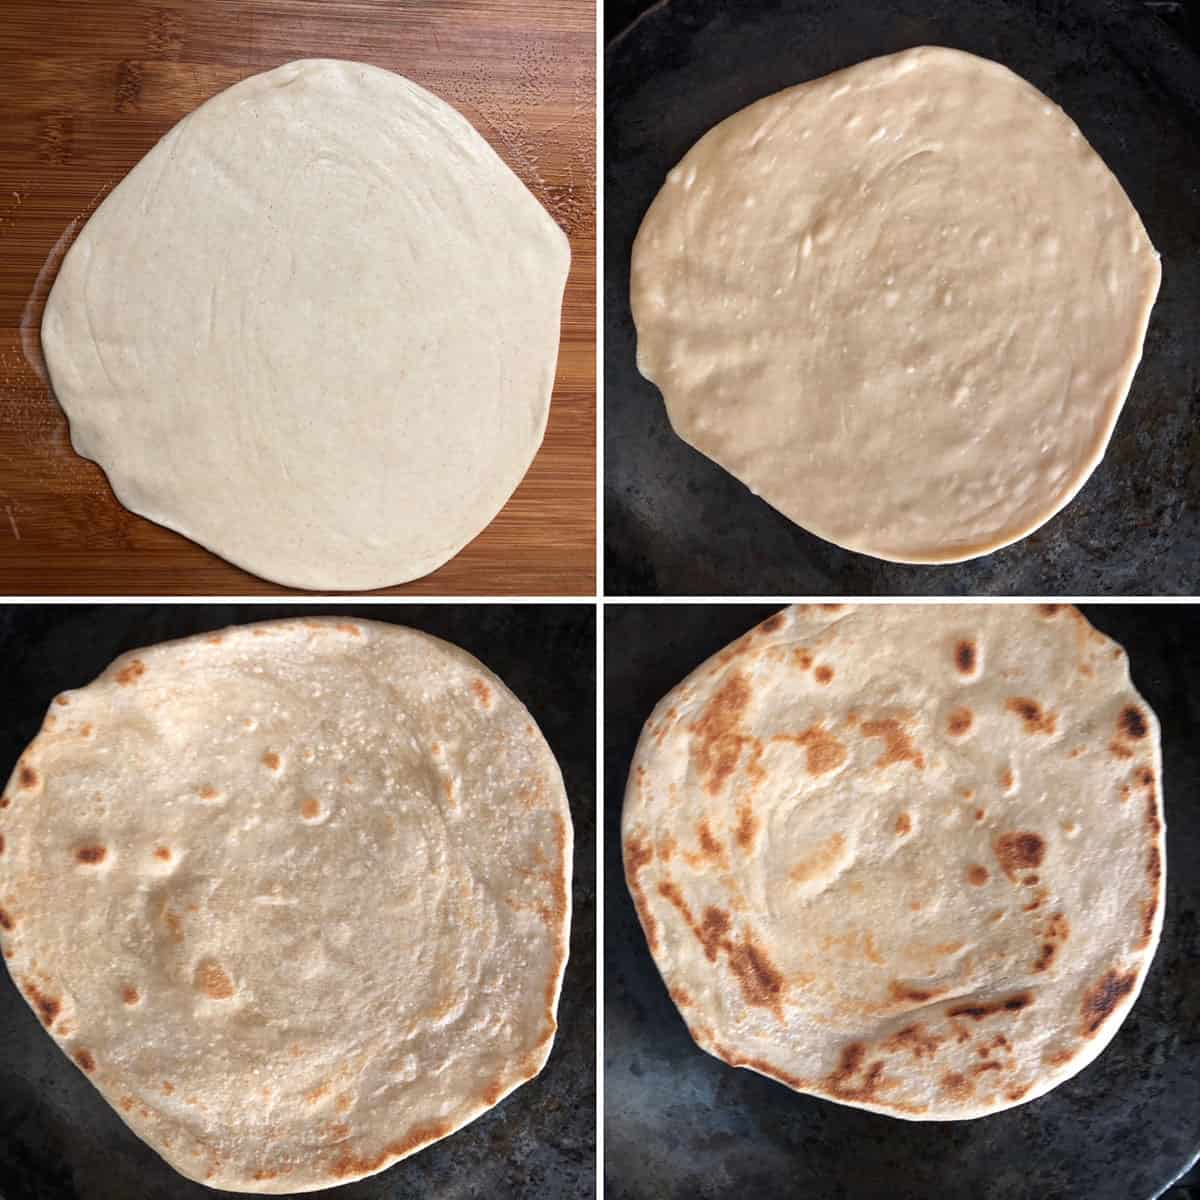 Rolled out parotta cooked on a hot griddle until golden brown on both sides